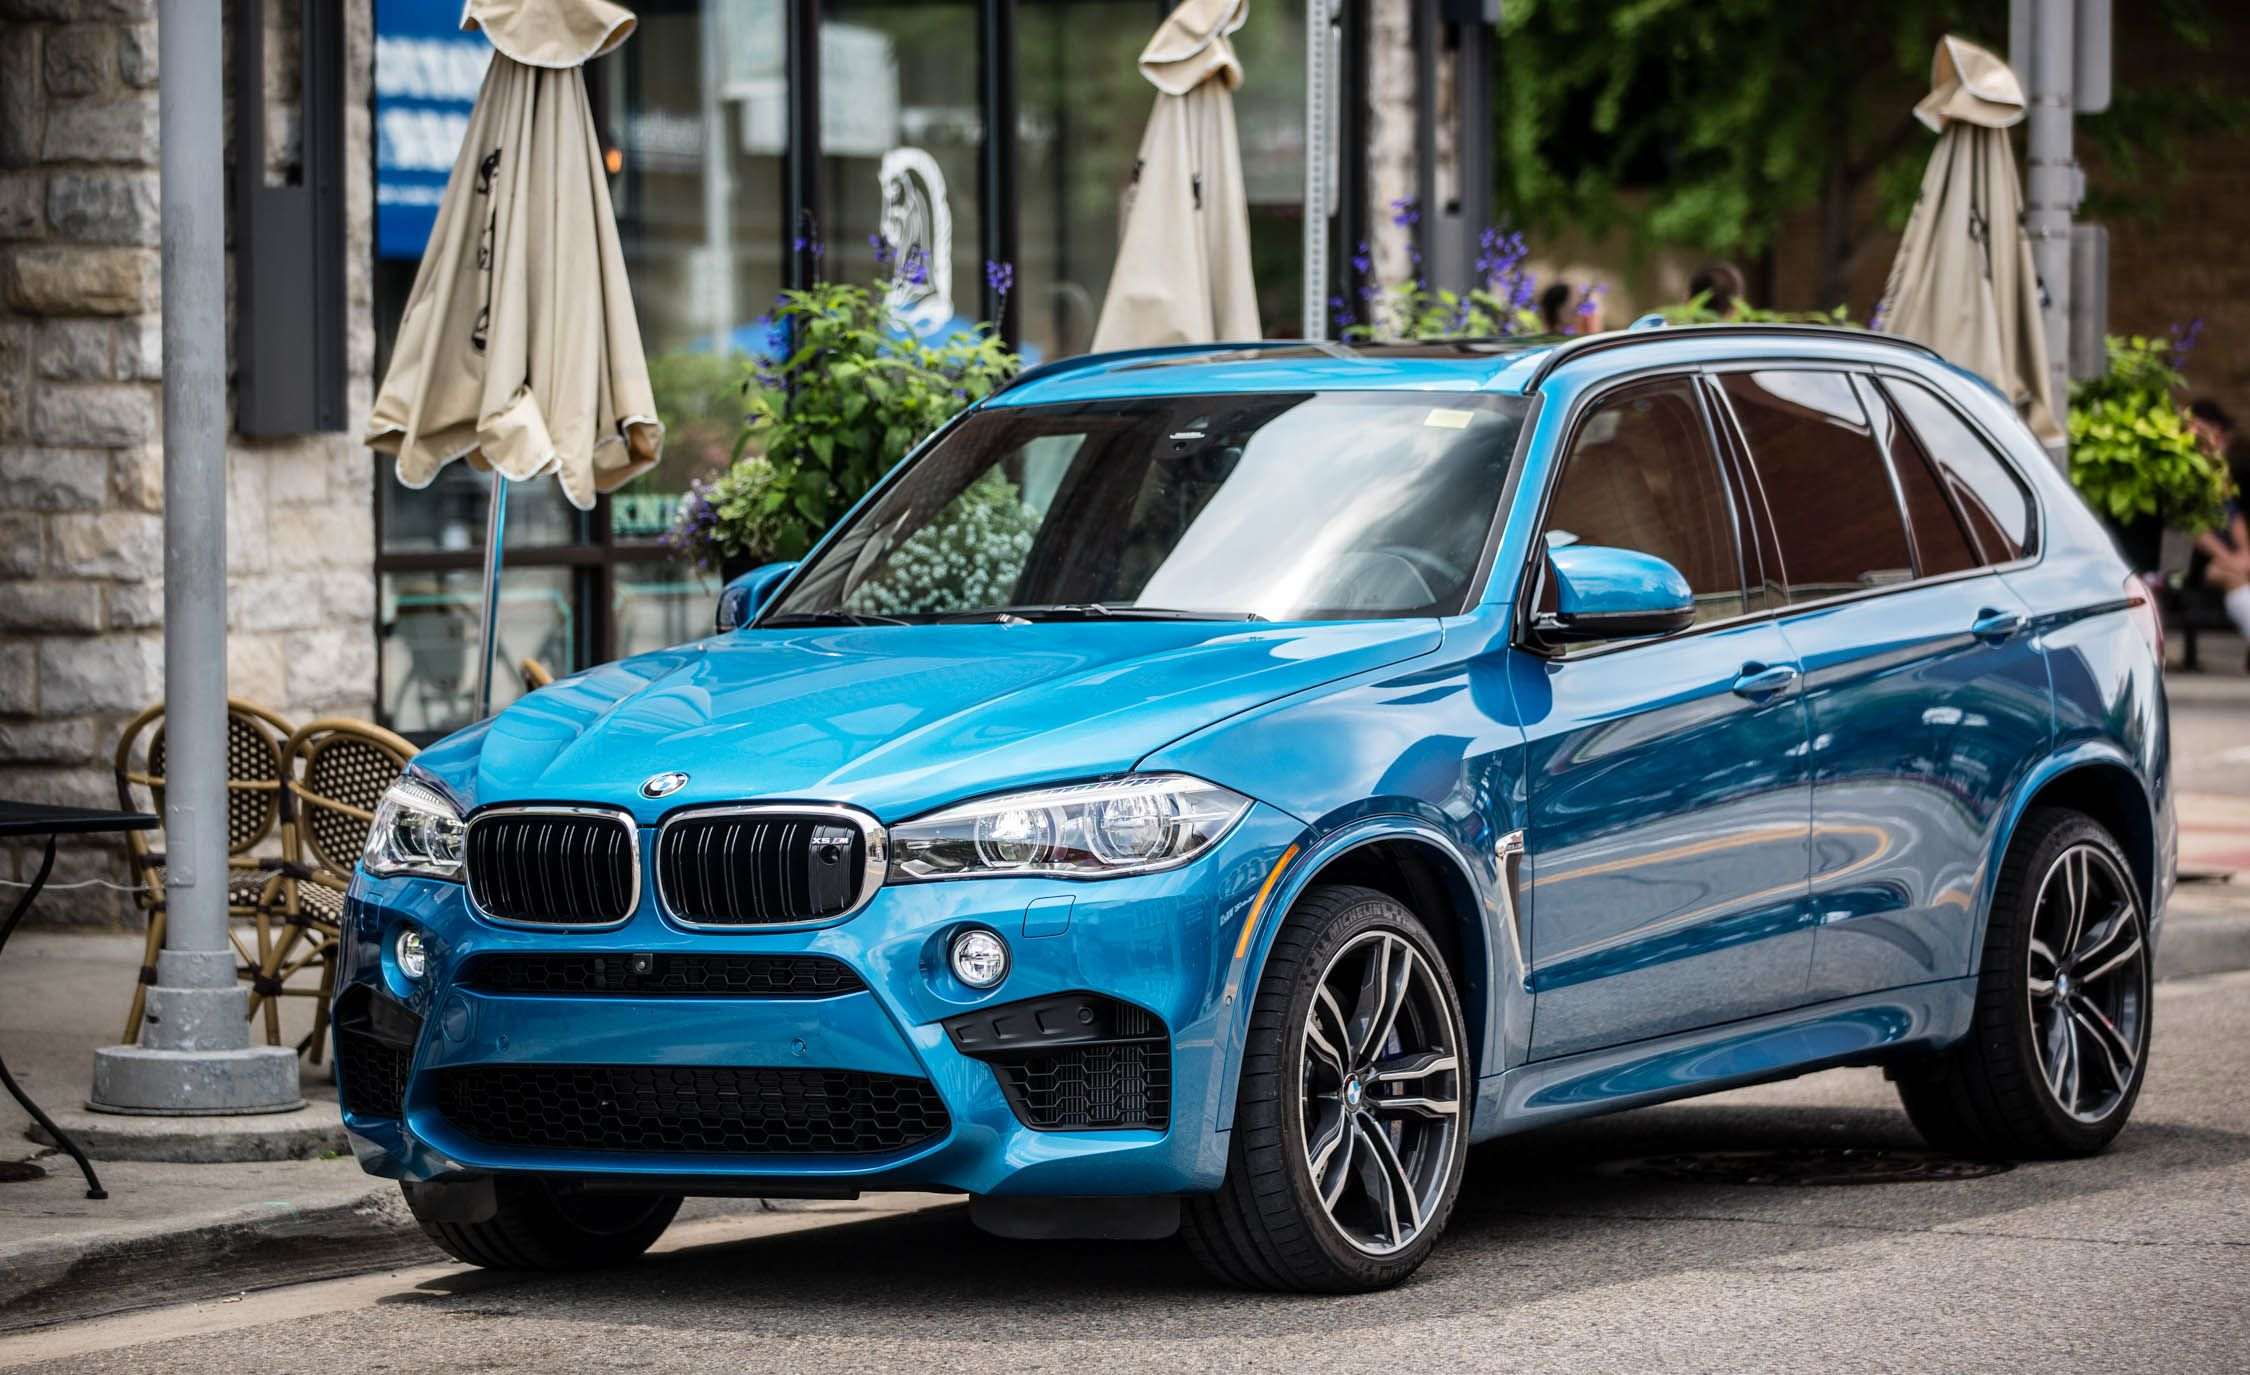 2017 bmw x5 m engine and transmission review car and. Black Bedroom Furniture Sets. Home Design Ideas